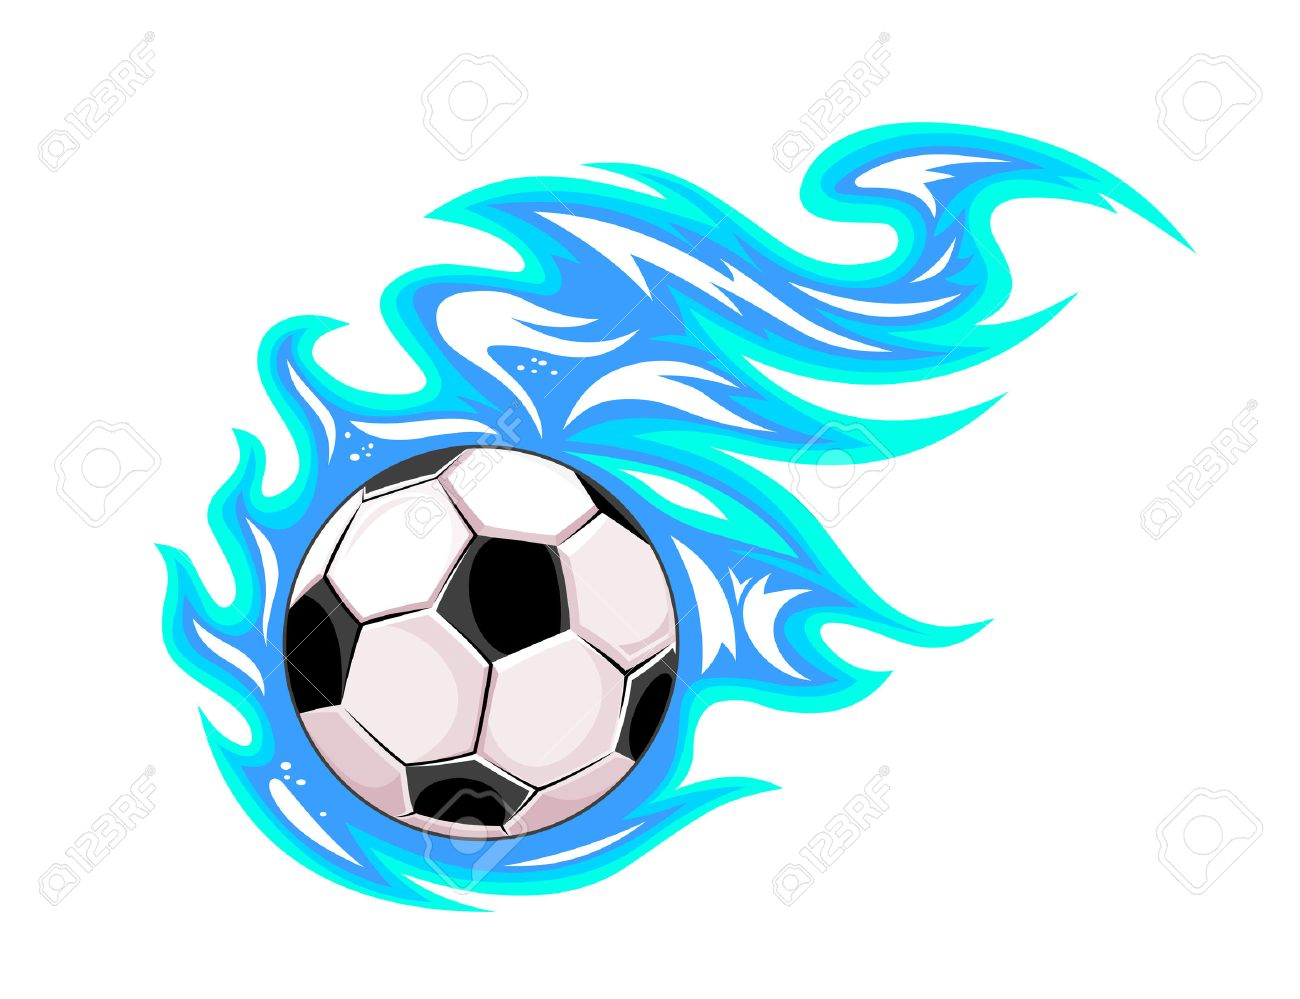 Championship Soccer Ball Or Football Leaving A Blue Trail As ...